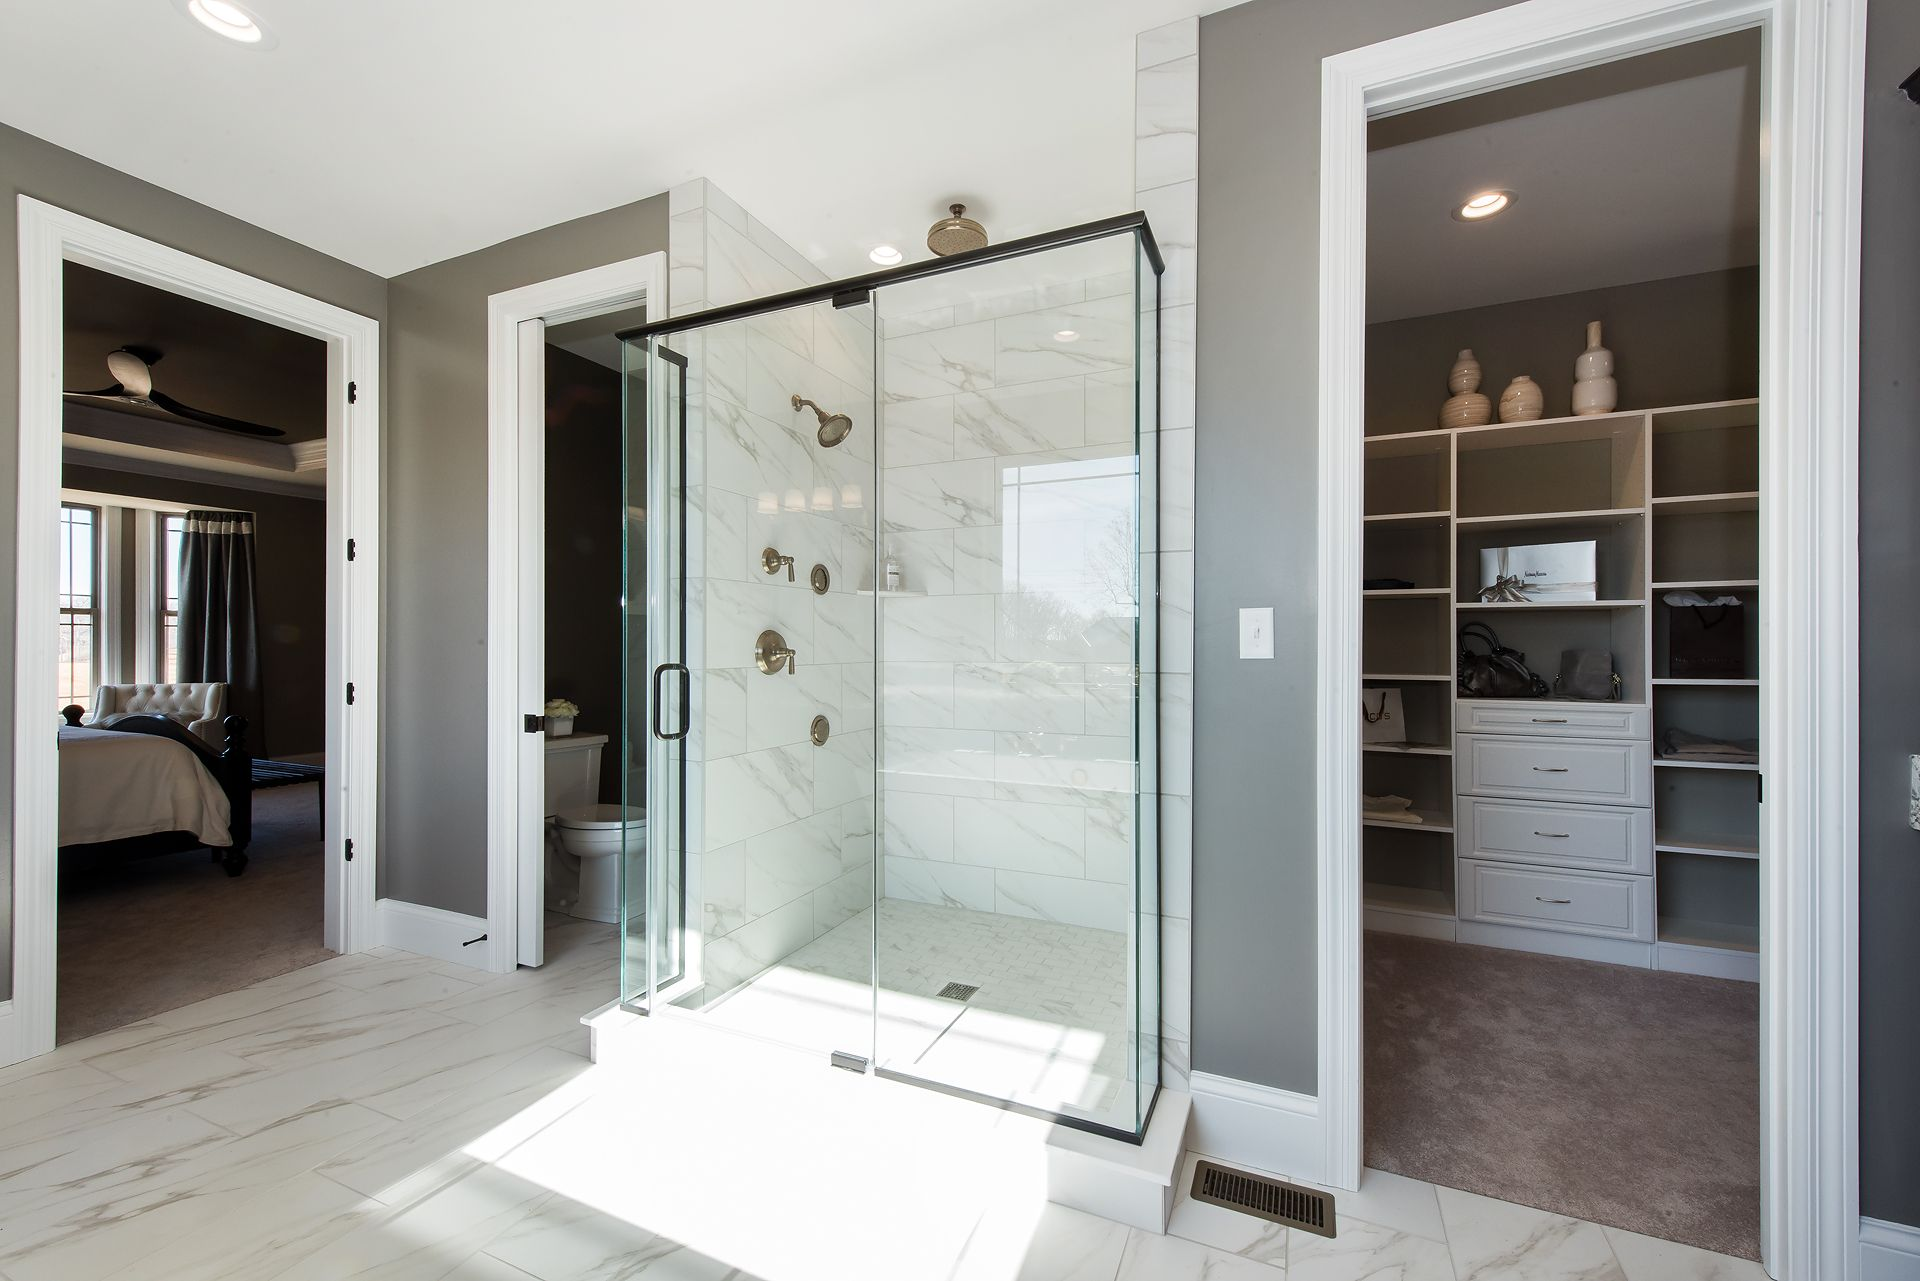 Bathroom featured in The Raleigh II By Lombardo  in St. Louis, MO